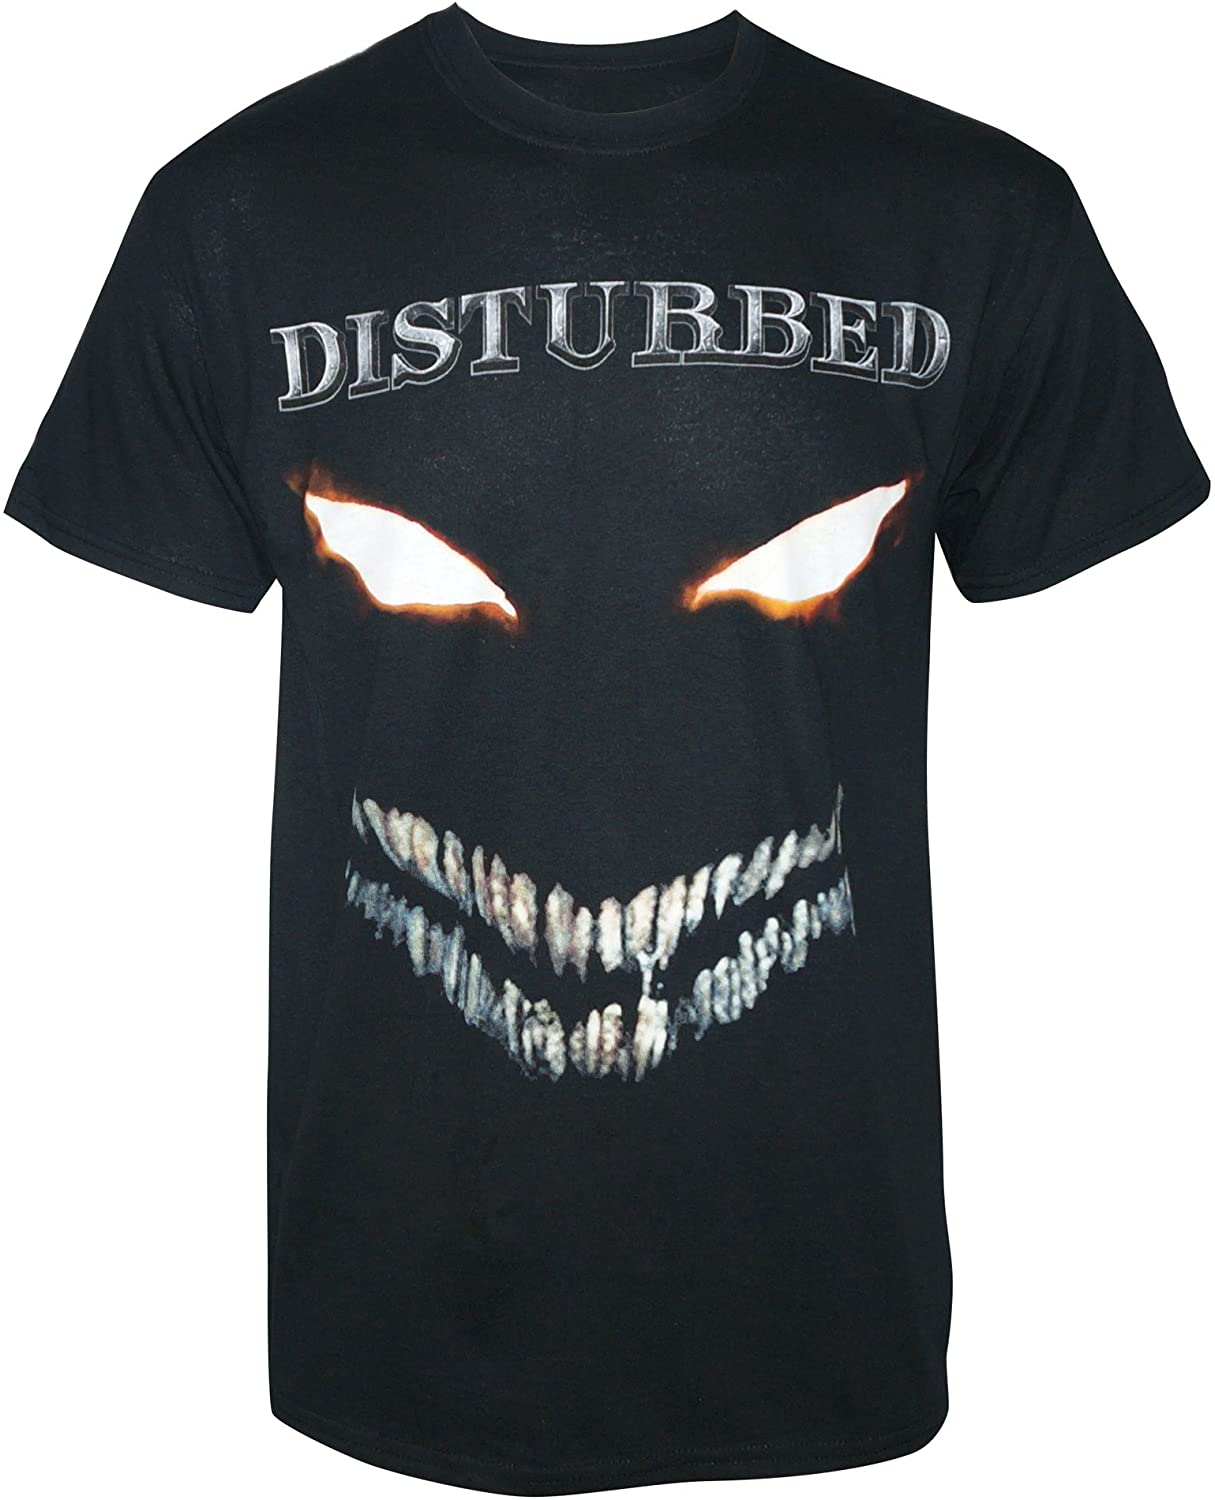 MERCH TRAFFIC Disturbed Men's Scary Face Full Color T-Shirt Black